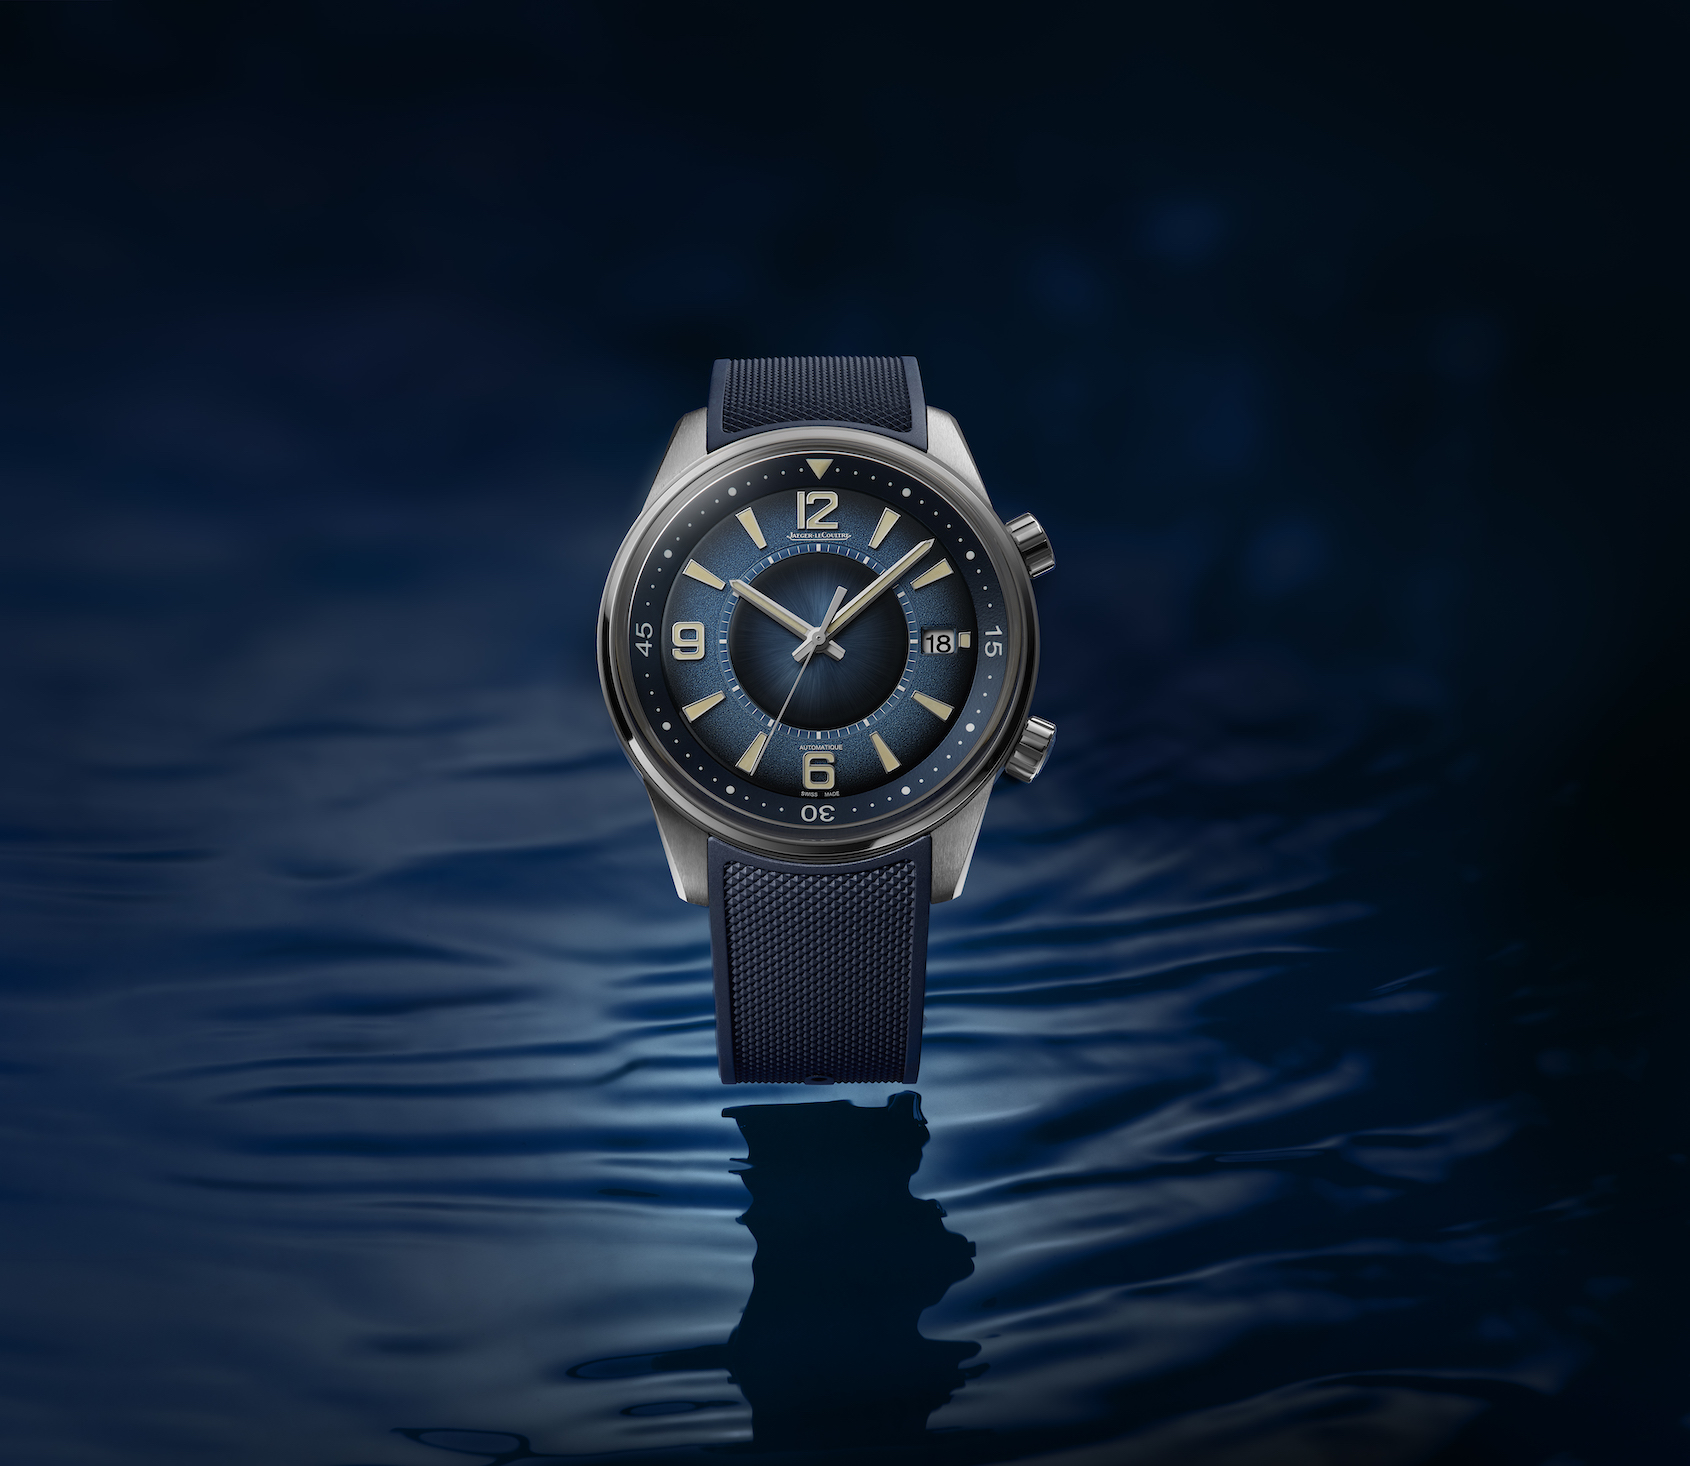 INTRODUCING: Jaeger-LeCoultre Polaris Date limited edition